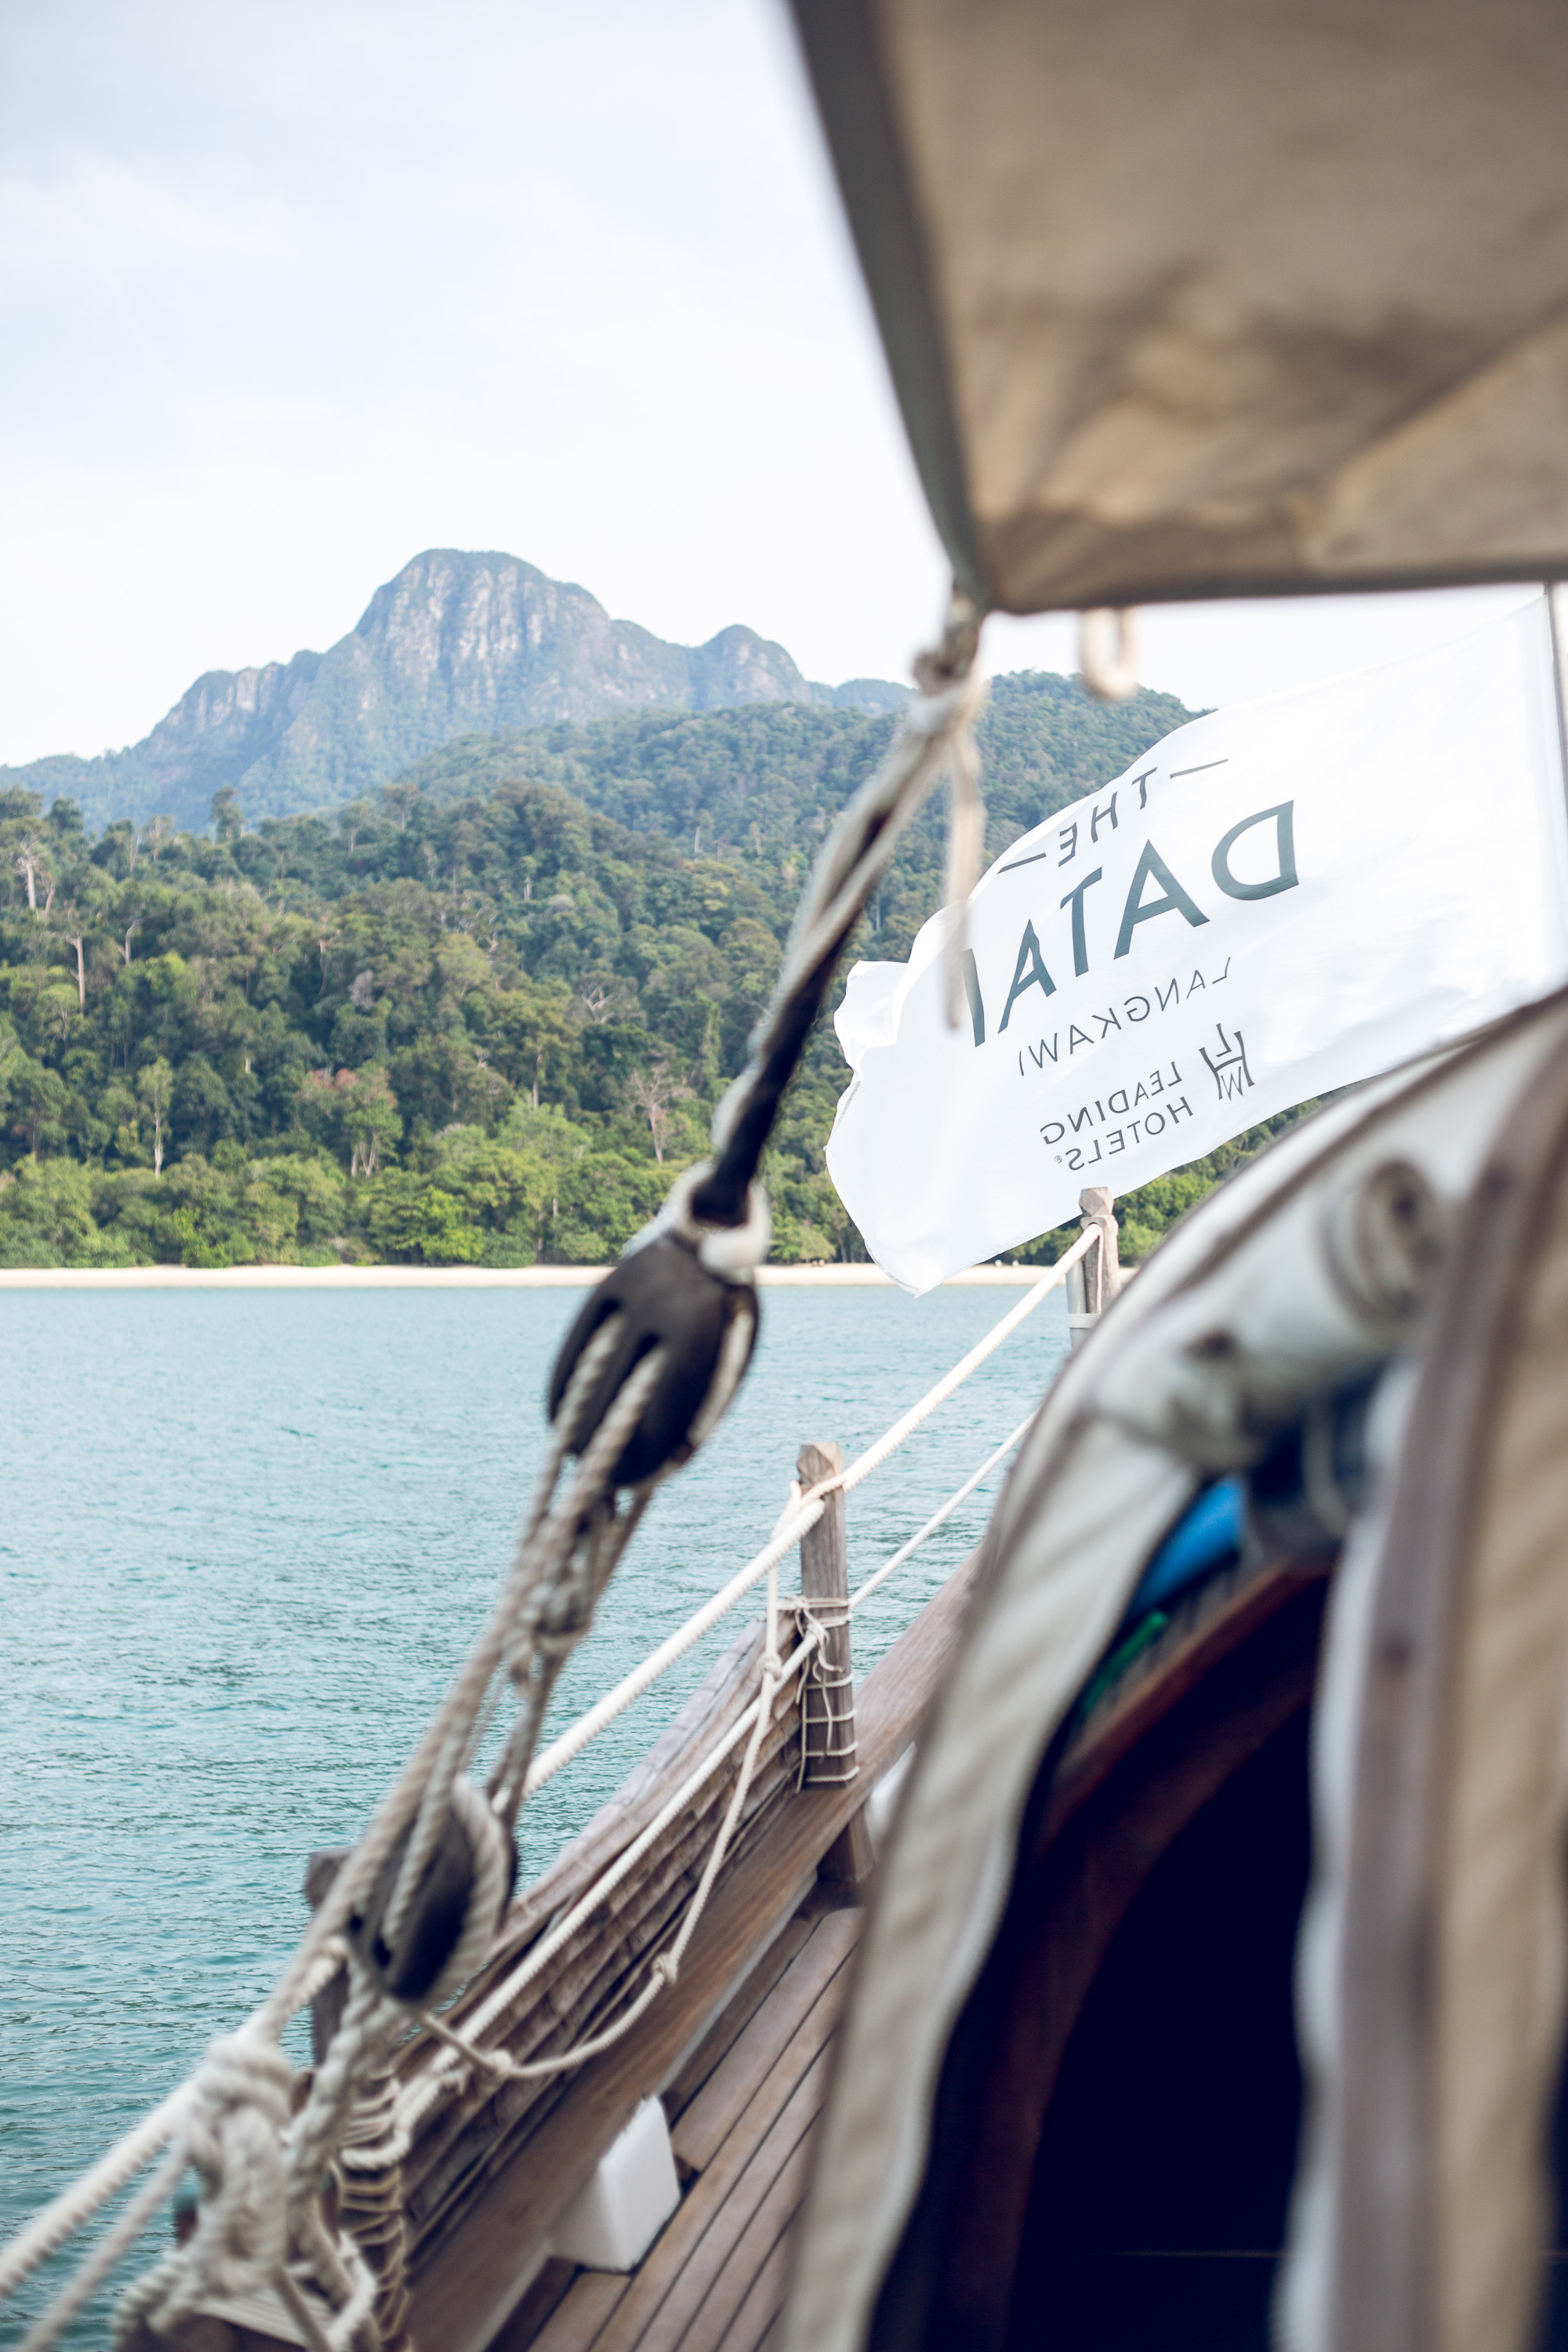 The Datai Langkawi - Photography by Moritz LipsWritten by Oliver LipsApril 17 - 20, 2016